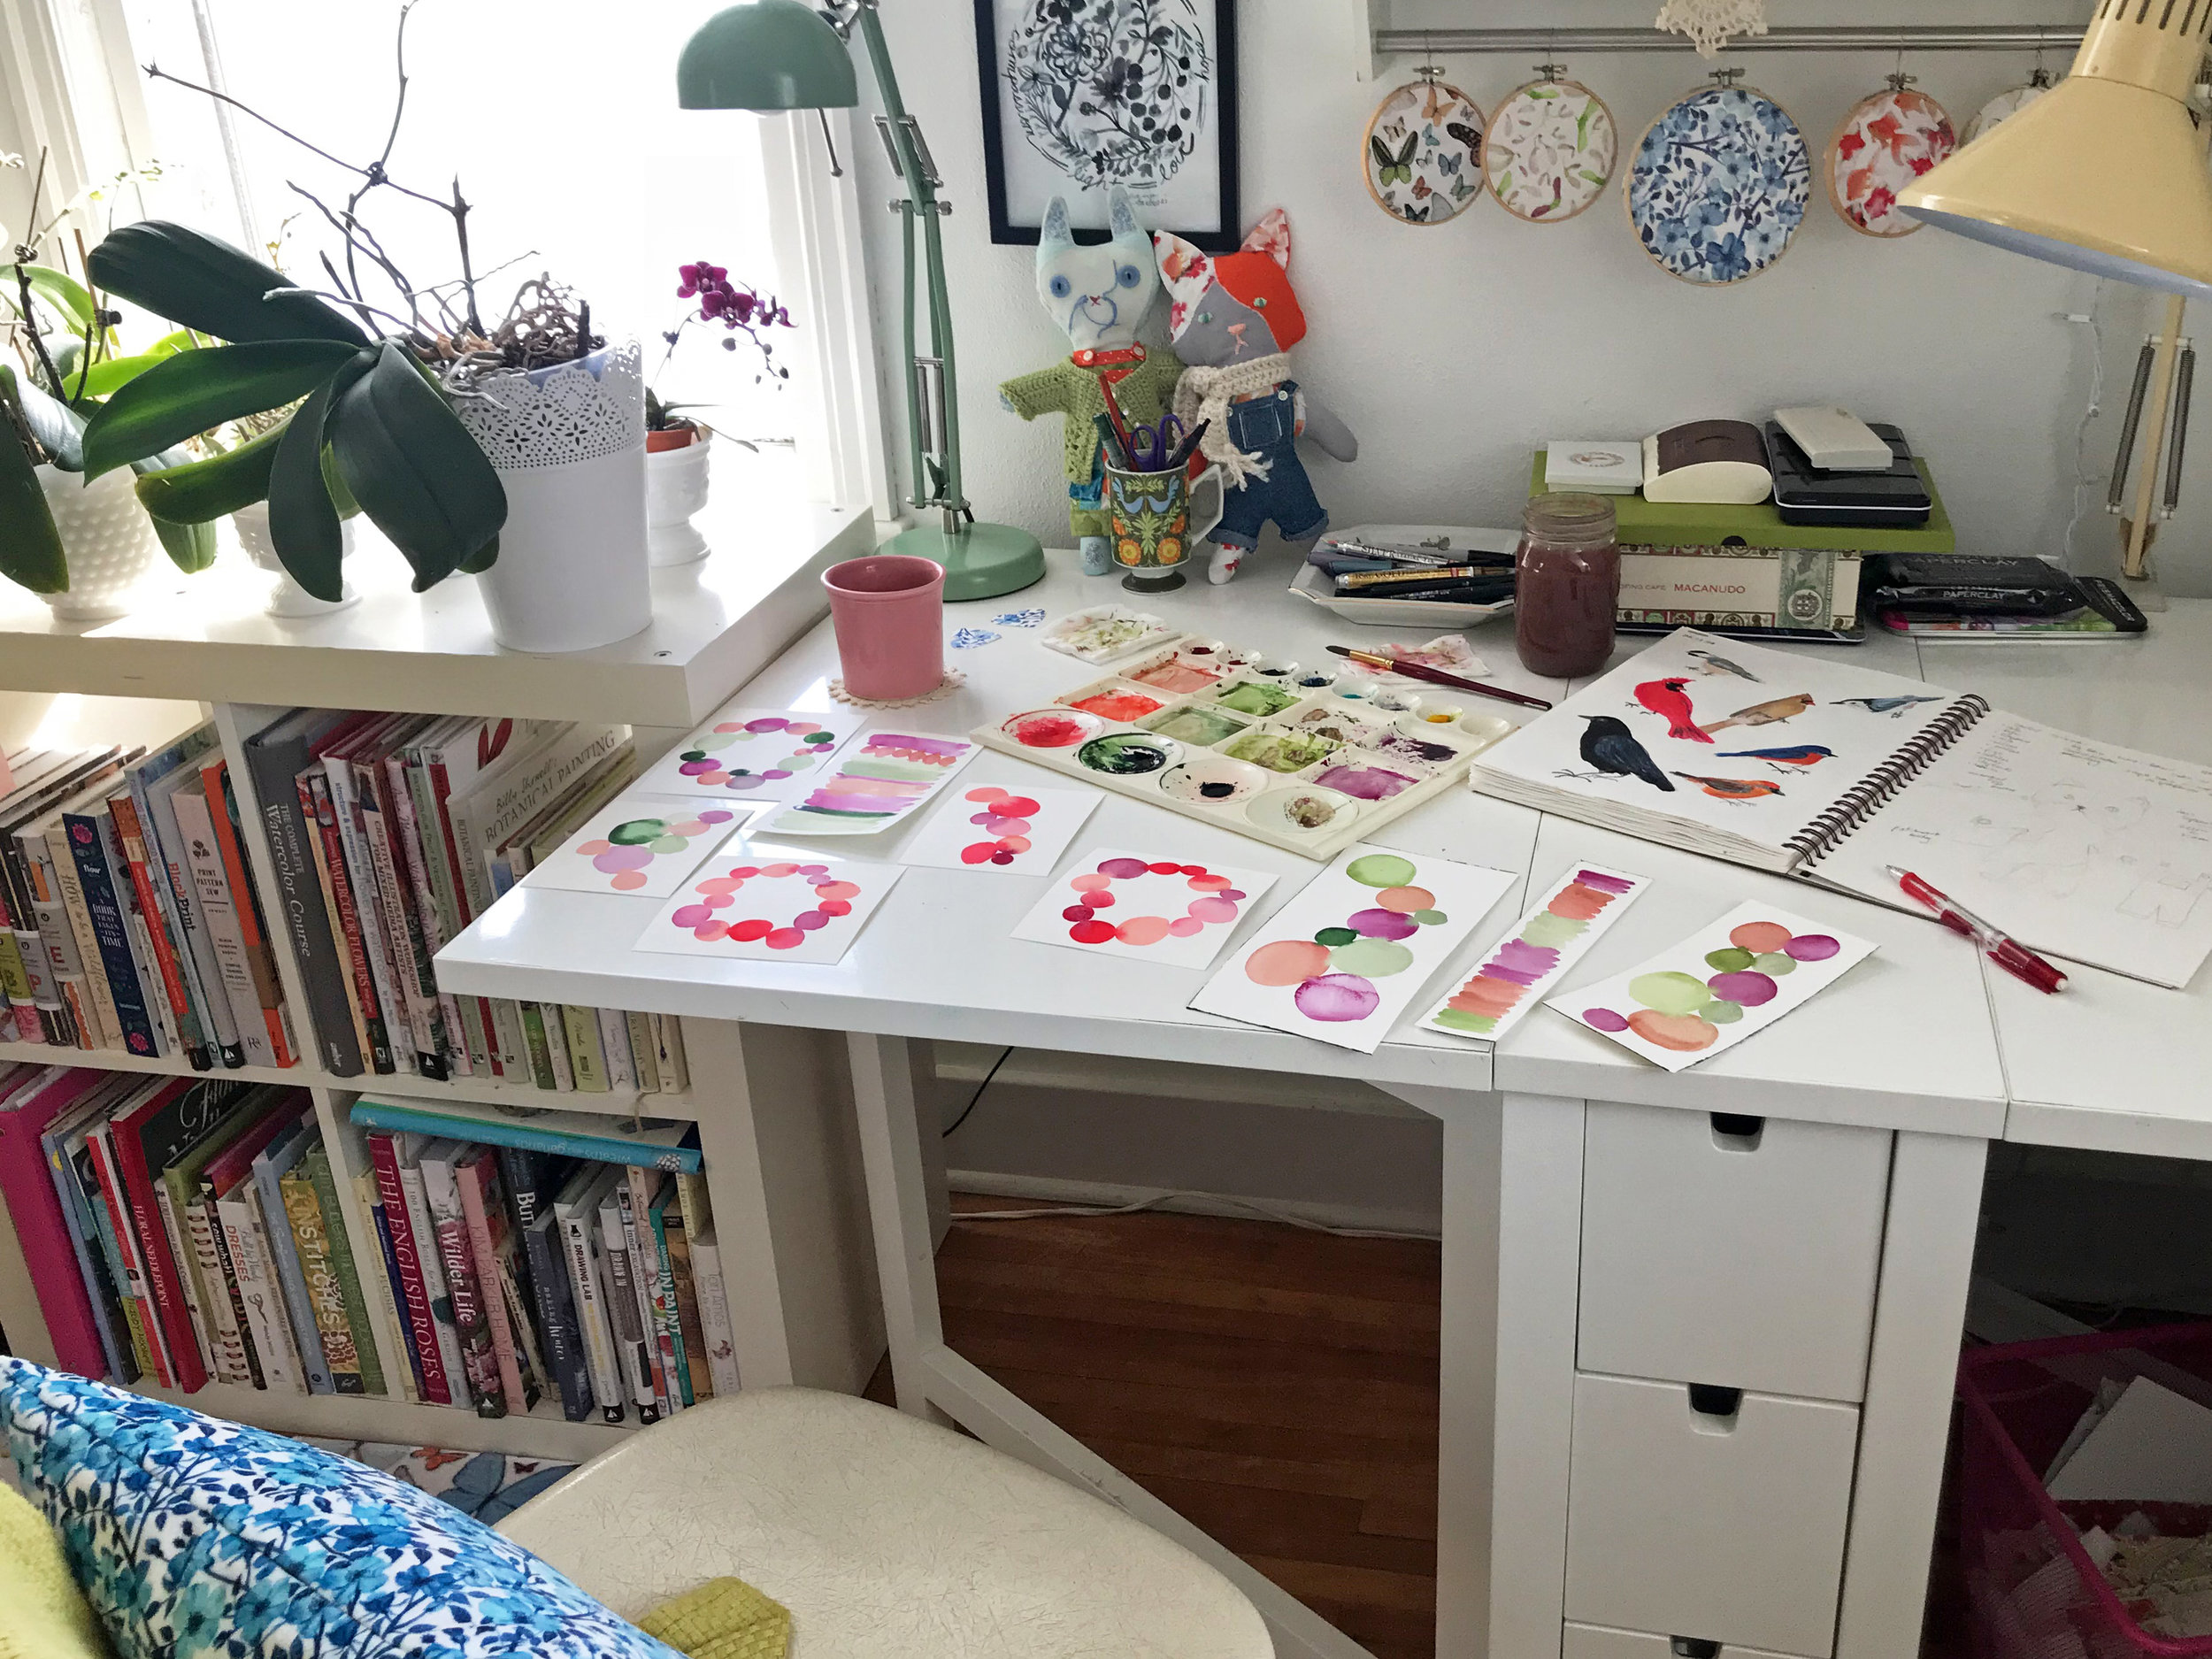 My messy studio work table with lots of projects in progress